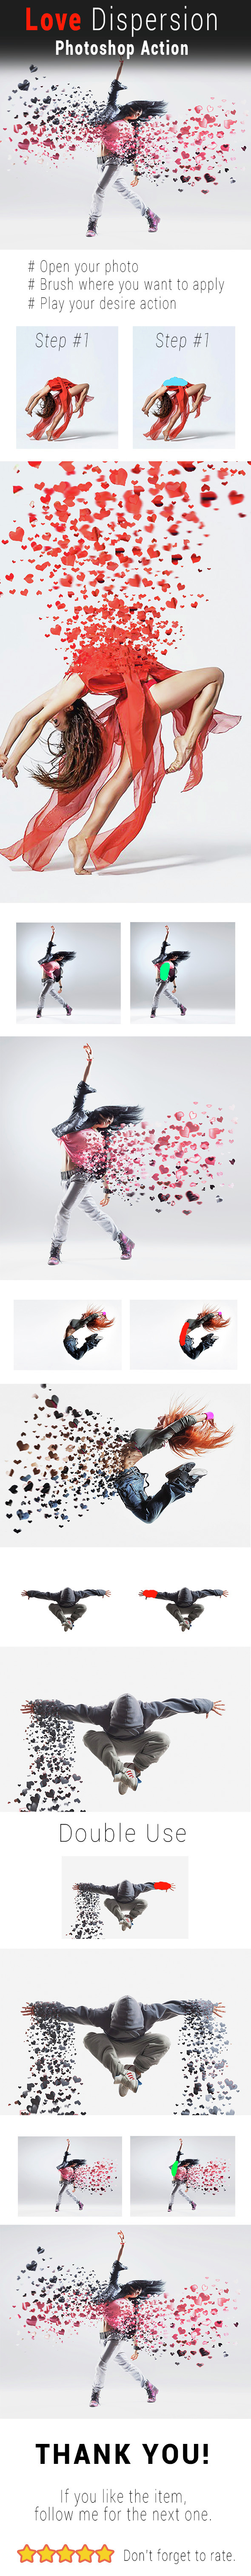 Valentine Love Dispersion Photoshop Action - Photo Effects Actions